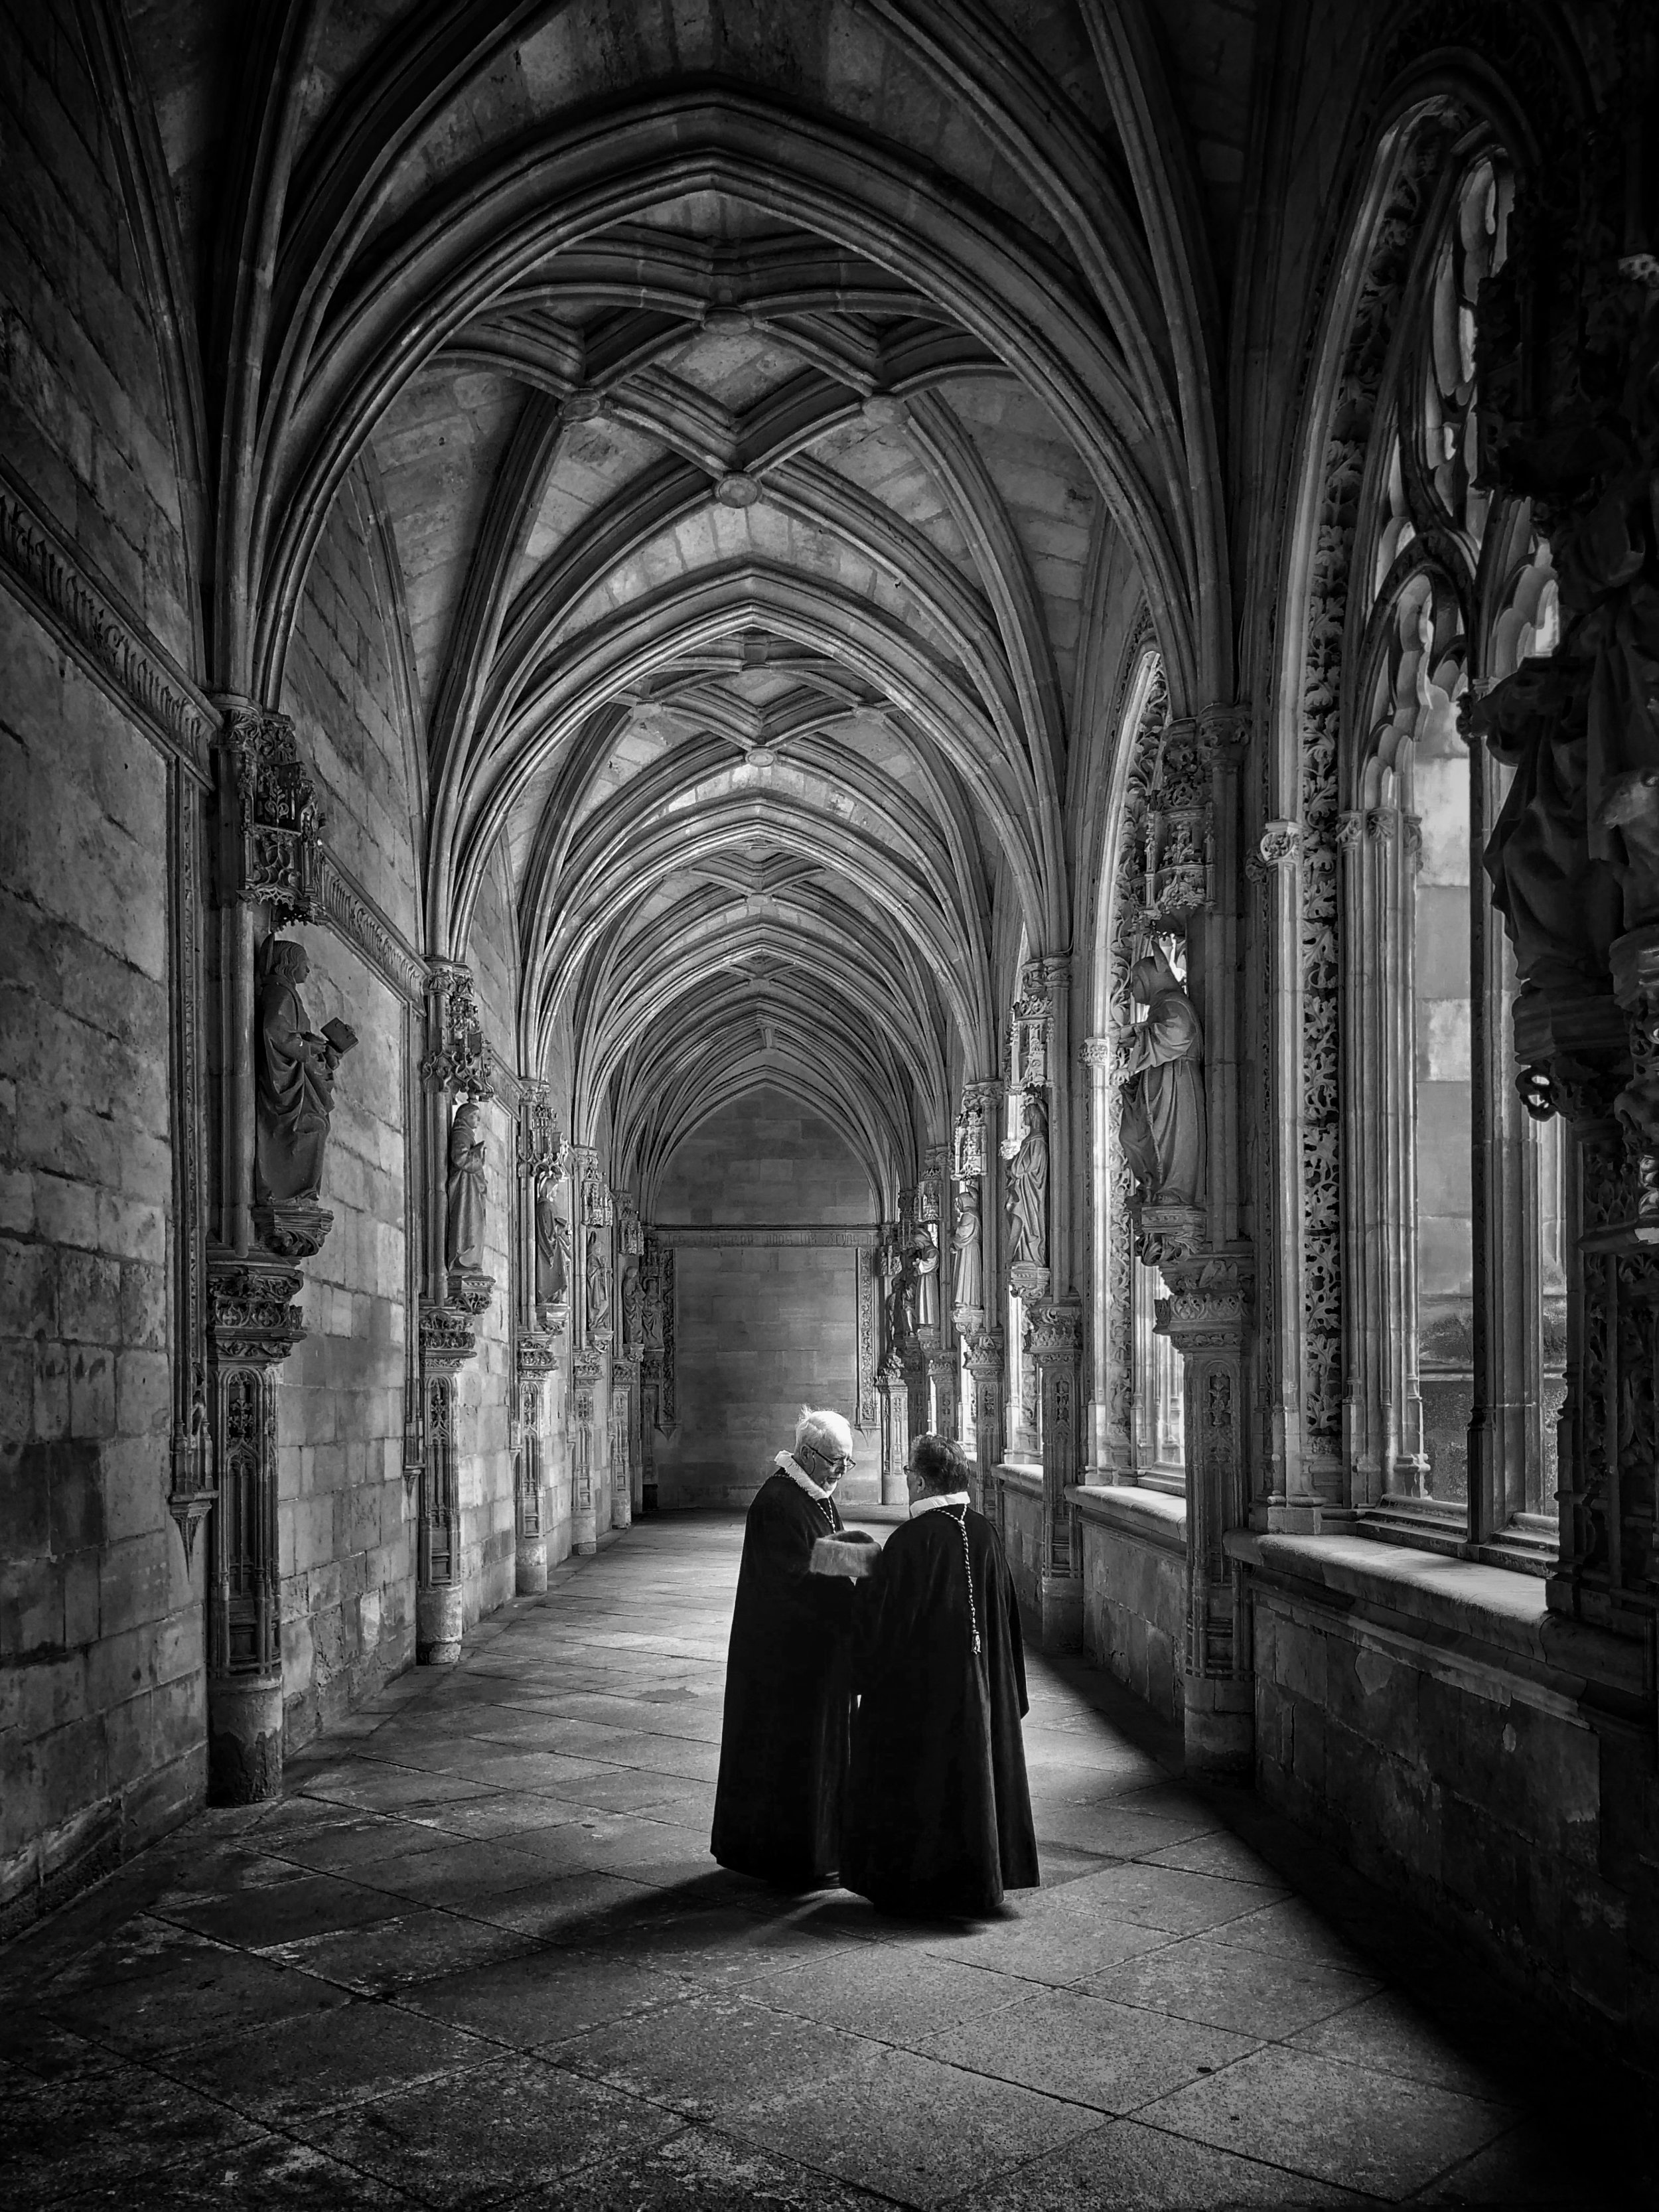 Conversation in the cloisters, Toledo, Spain by Joseph Cyr